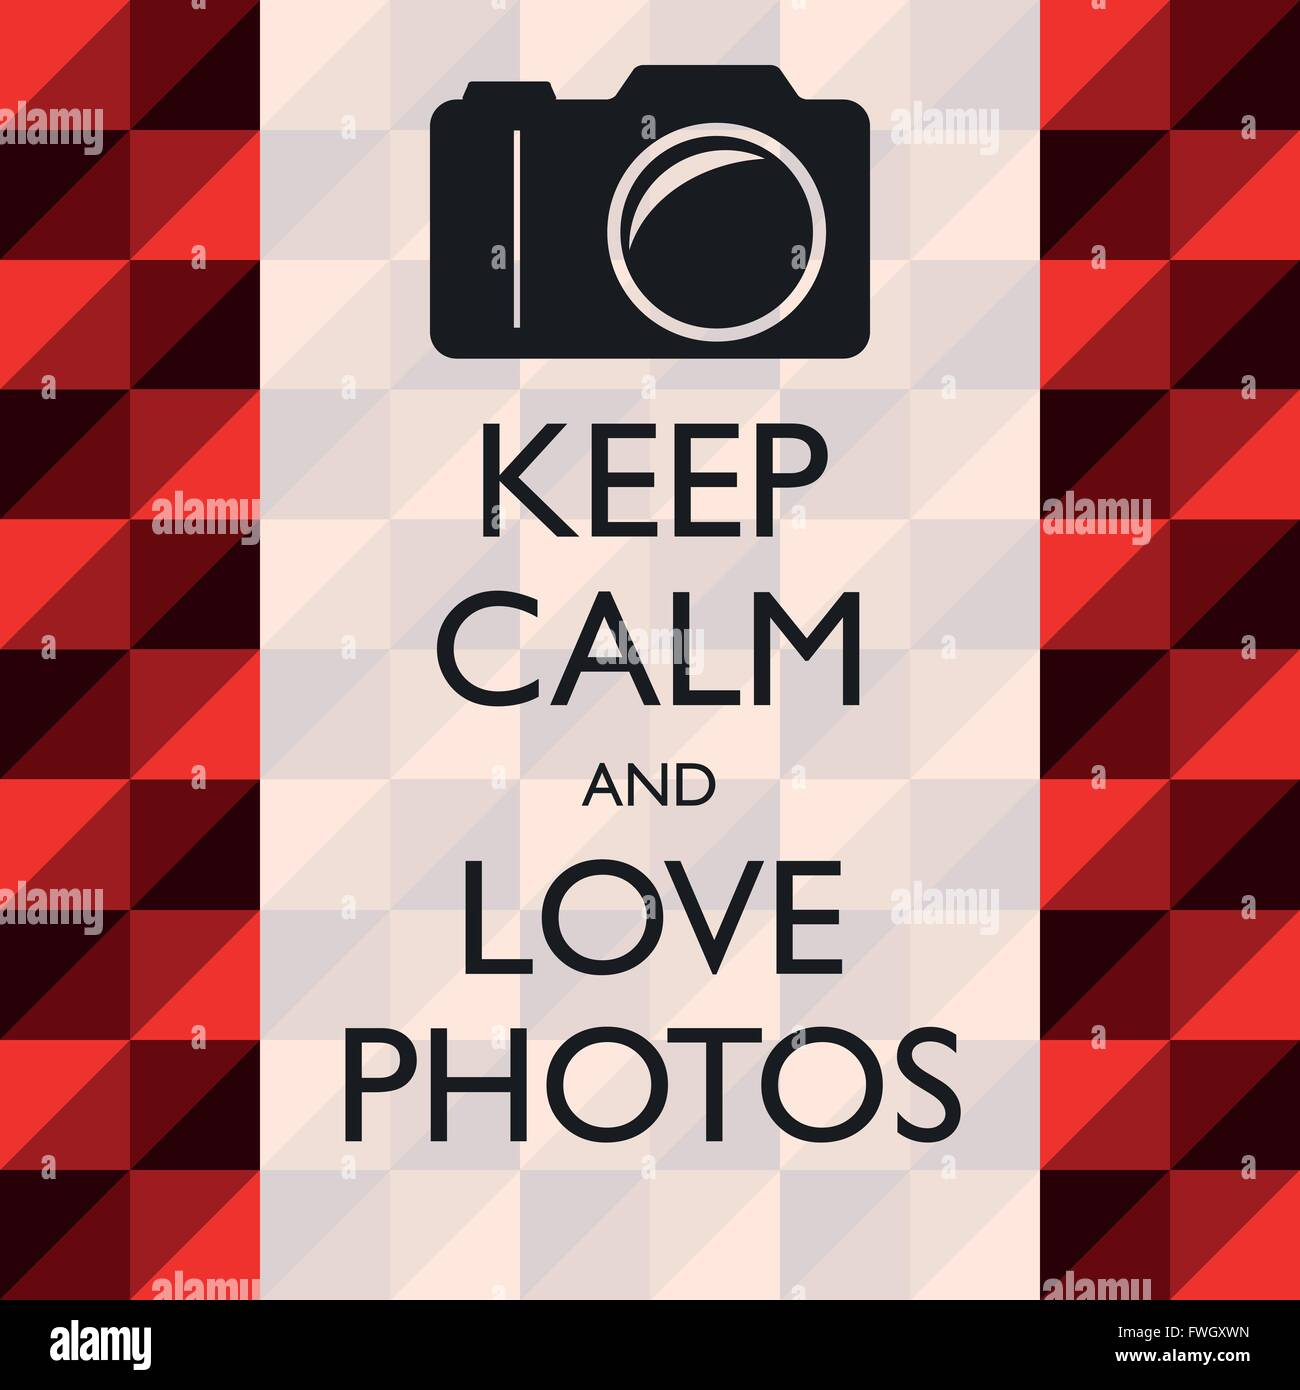 Illustration Graphic Vector Love Photos for different purpose in web and graphic design - Stock Vector